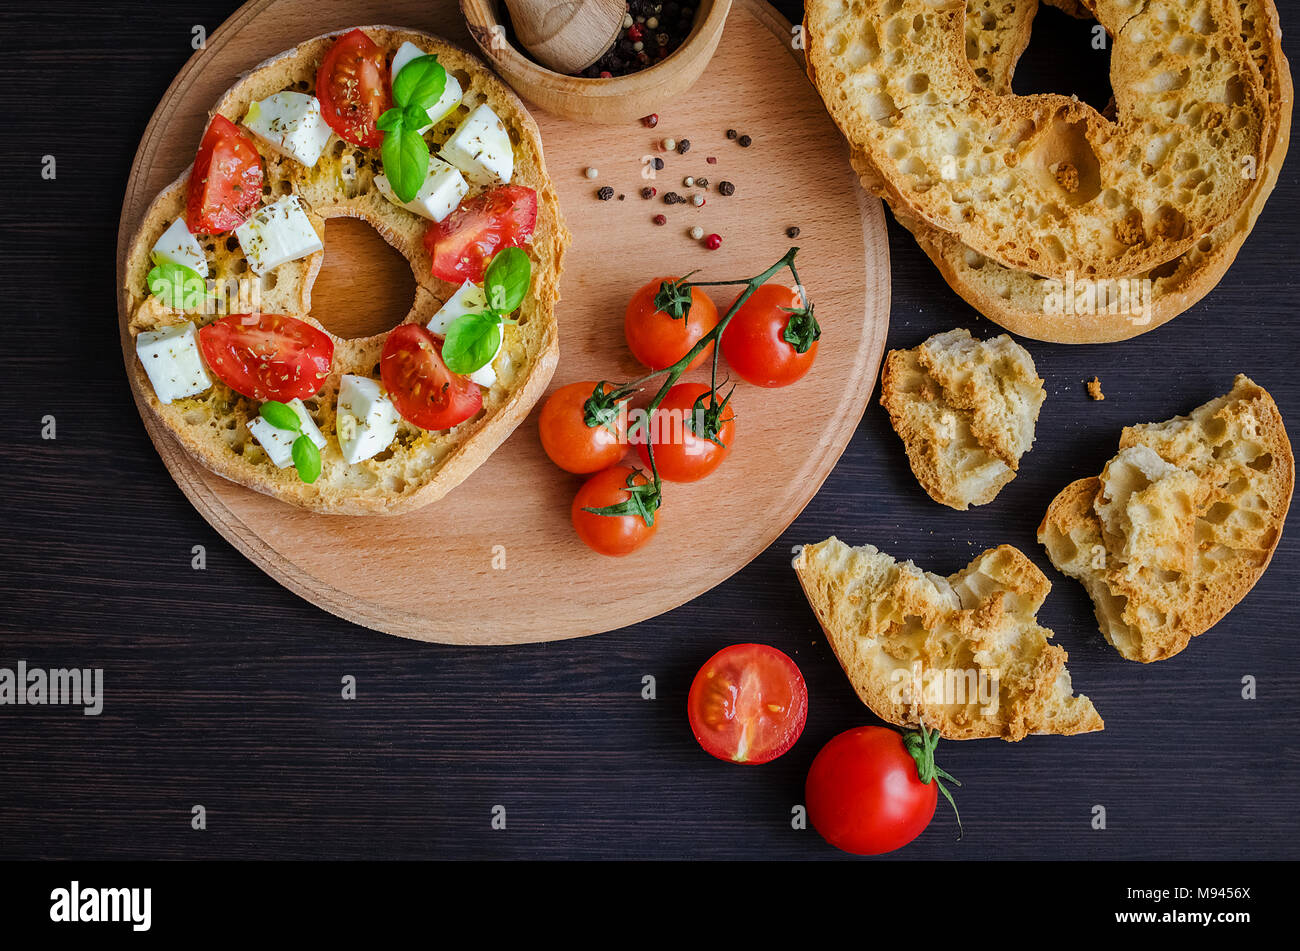 Italian appetizer Friselle. Italian dried bread Friselle on wooden board with tomatoes cherry, basil and pepper. Italian food. Healthy vegetarian food - Stock Image